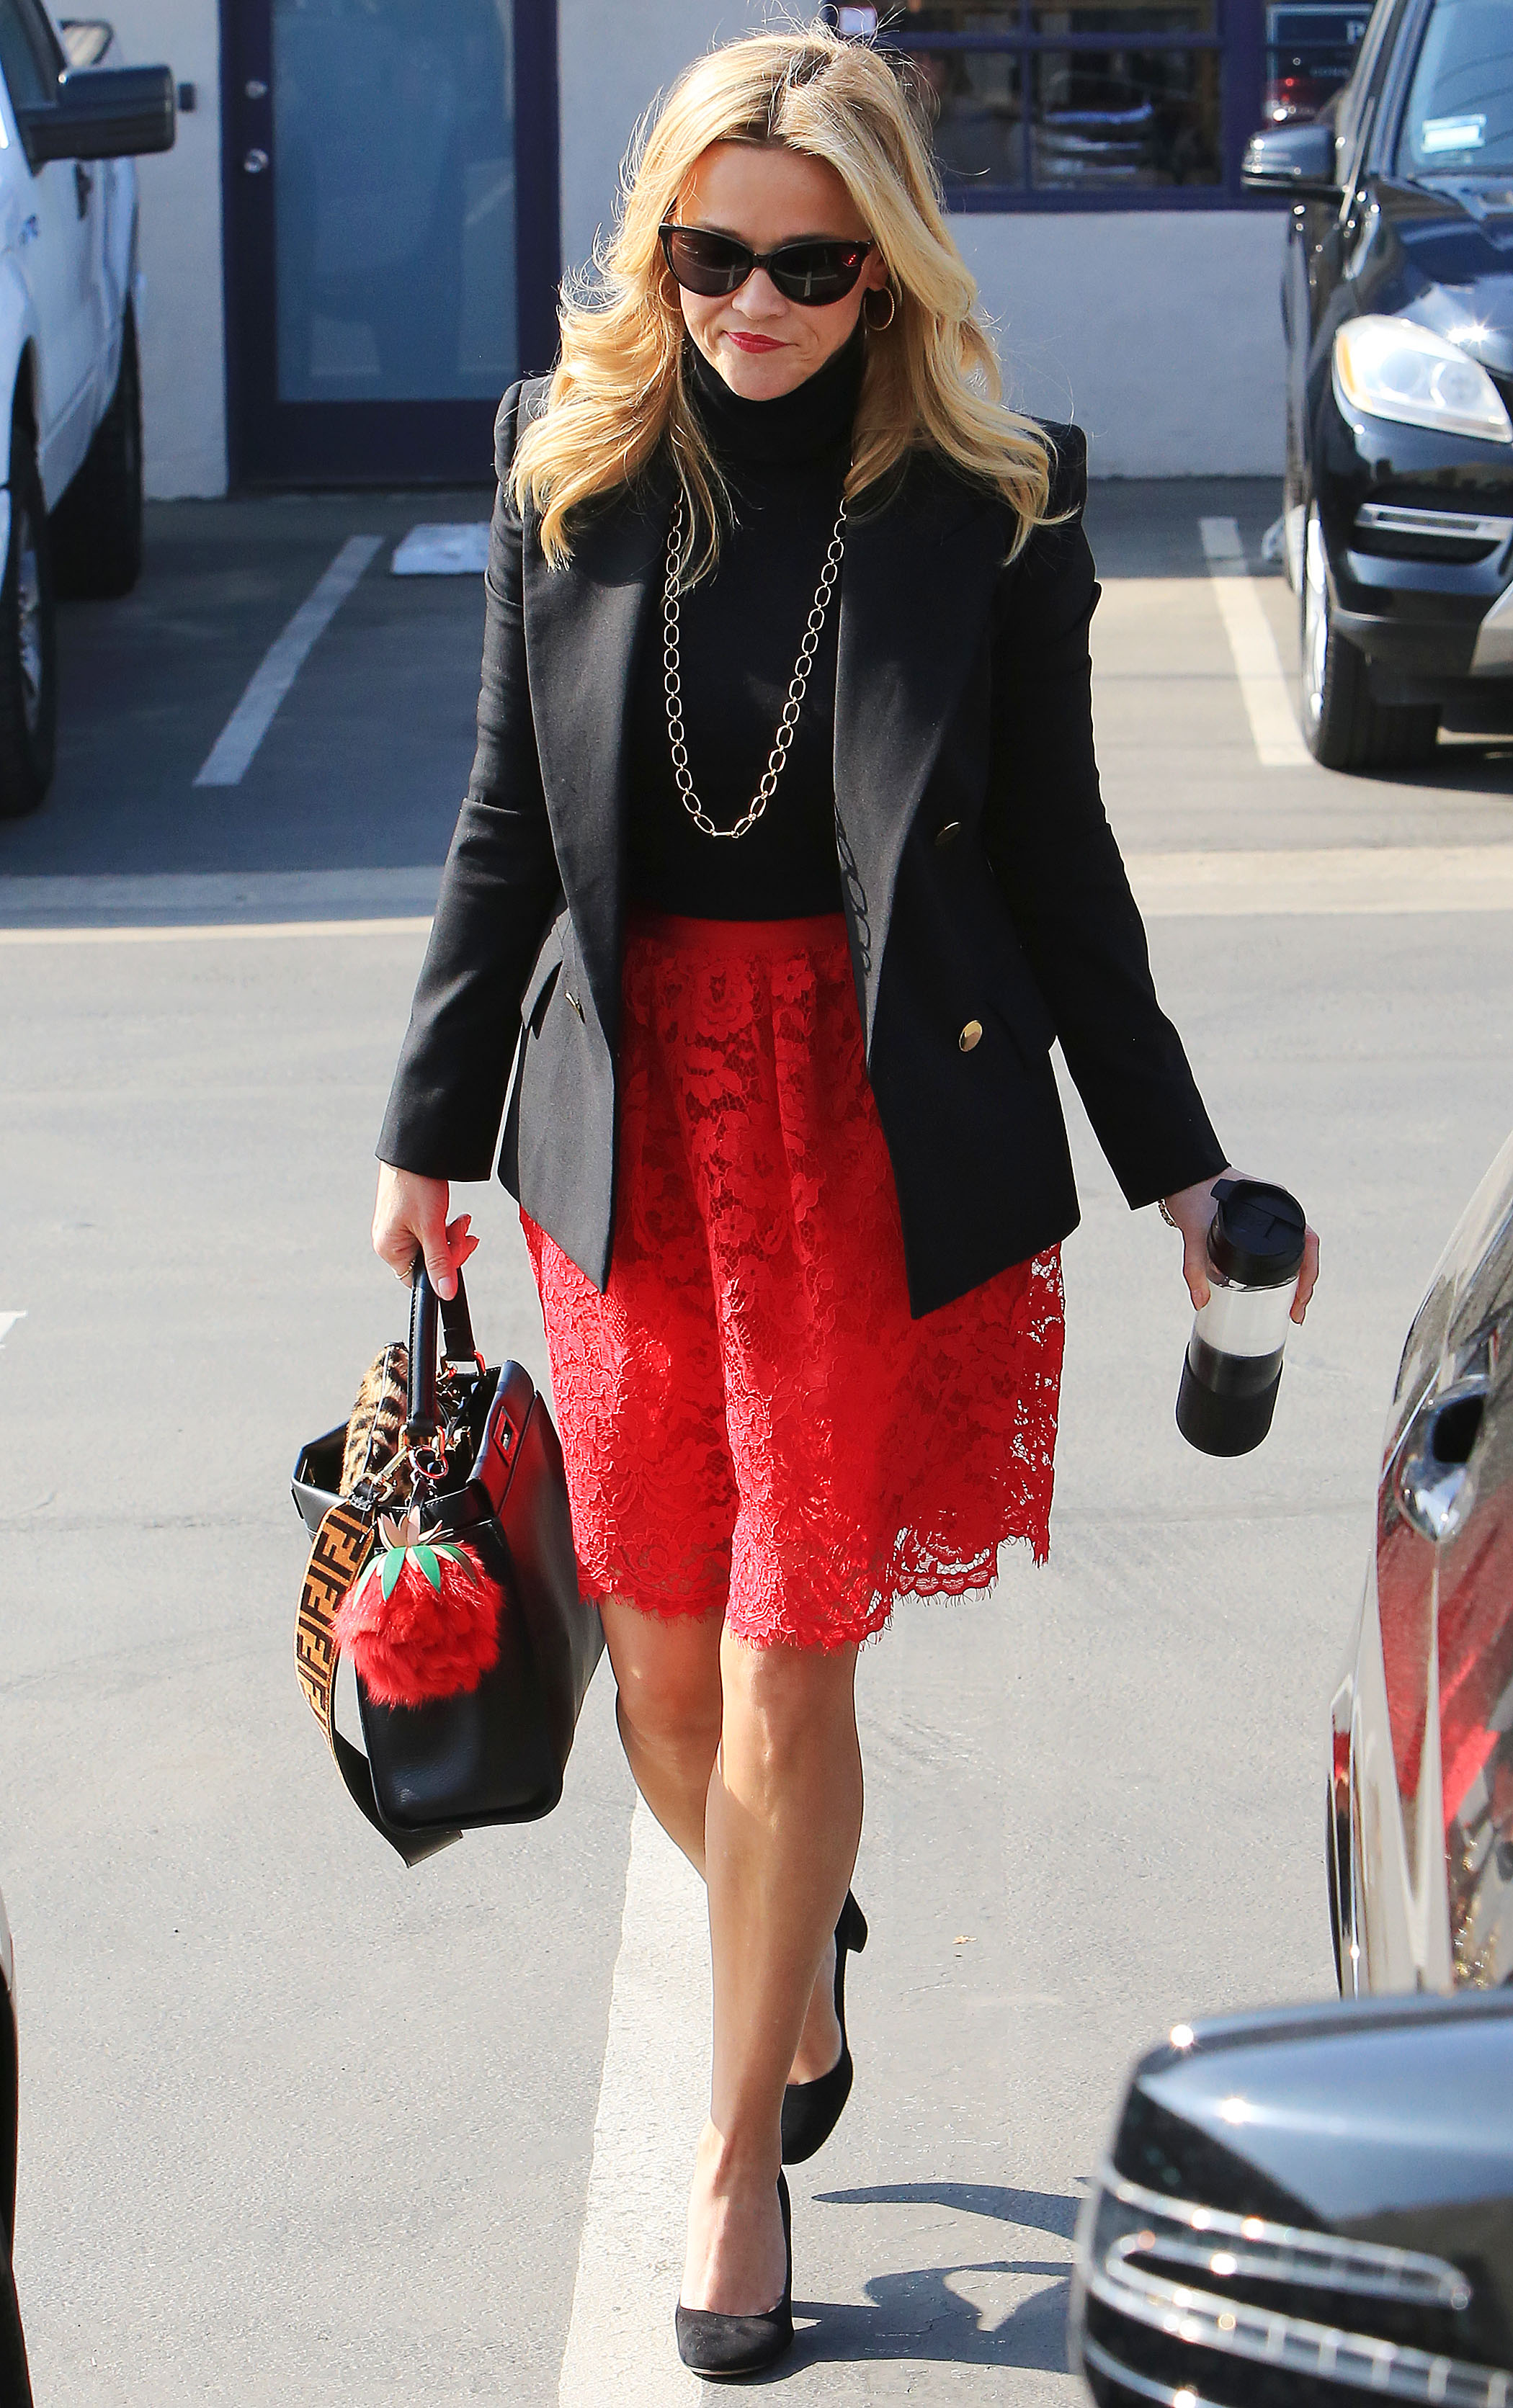 NO JUST JARED USAGE<BR/> Reese Witherspoon teams black turtleneck with eye-popping scarlet skirt as she run errands with her coffee mug in Brentwood <P> Pictured: Reese Witherspoon <B>Ref: SPL1655498  060218  </B><BR/> Picture by: Splash News<BR/> </P><P> <B>Splash News and Pictures</B><BR/> Los Angeles:310-821-2666<BR/> New York:212-619-2666<BR/> London:870-934-2666<BR/> <span id=